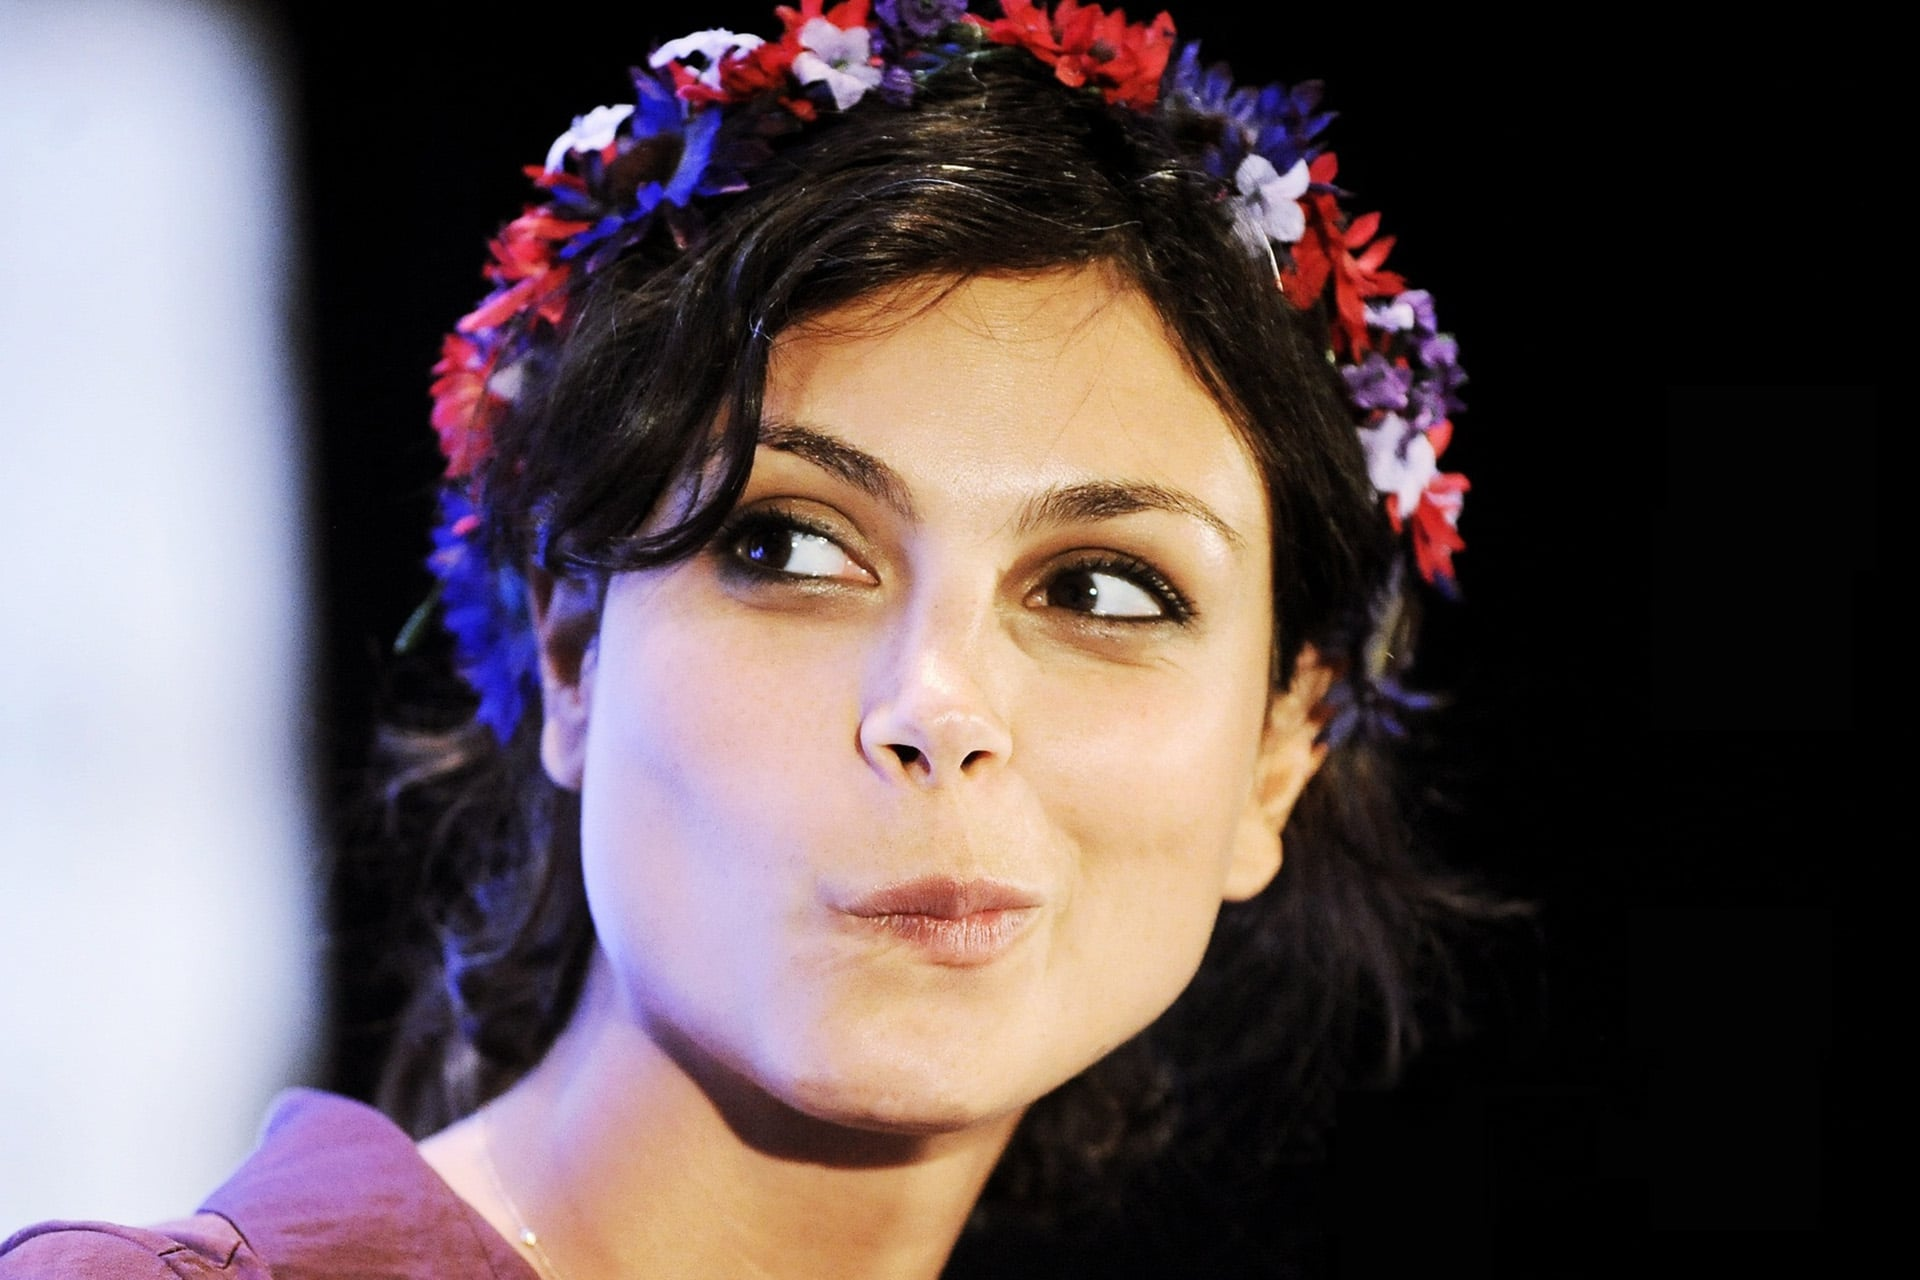 Amazing Morena Baccarin emotion picture